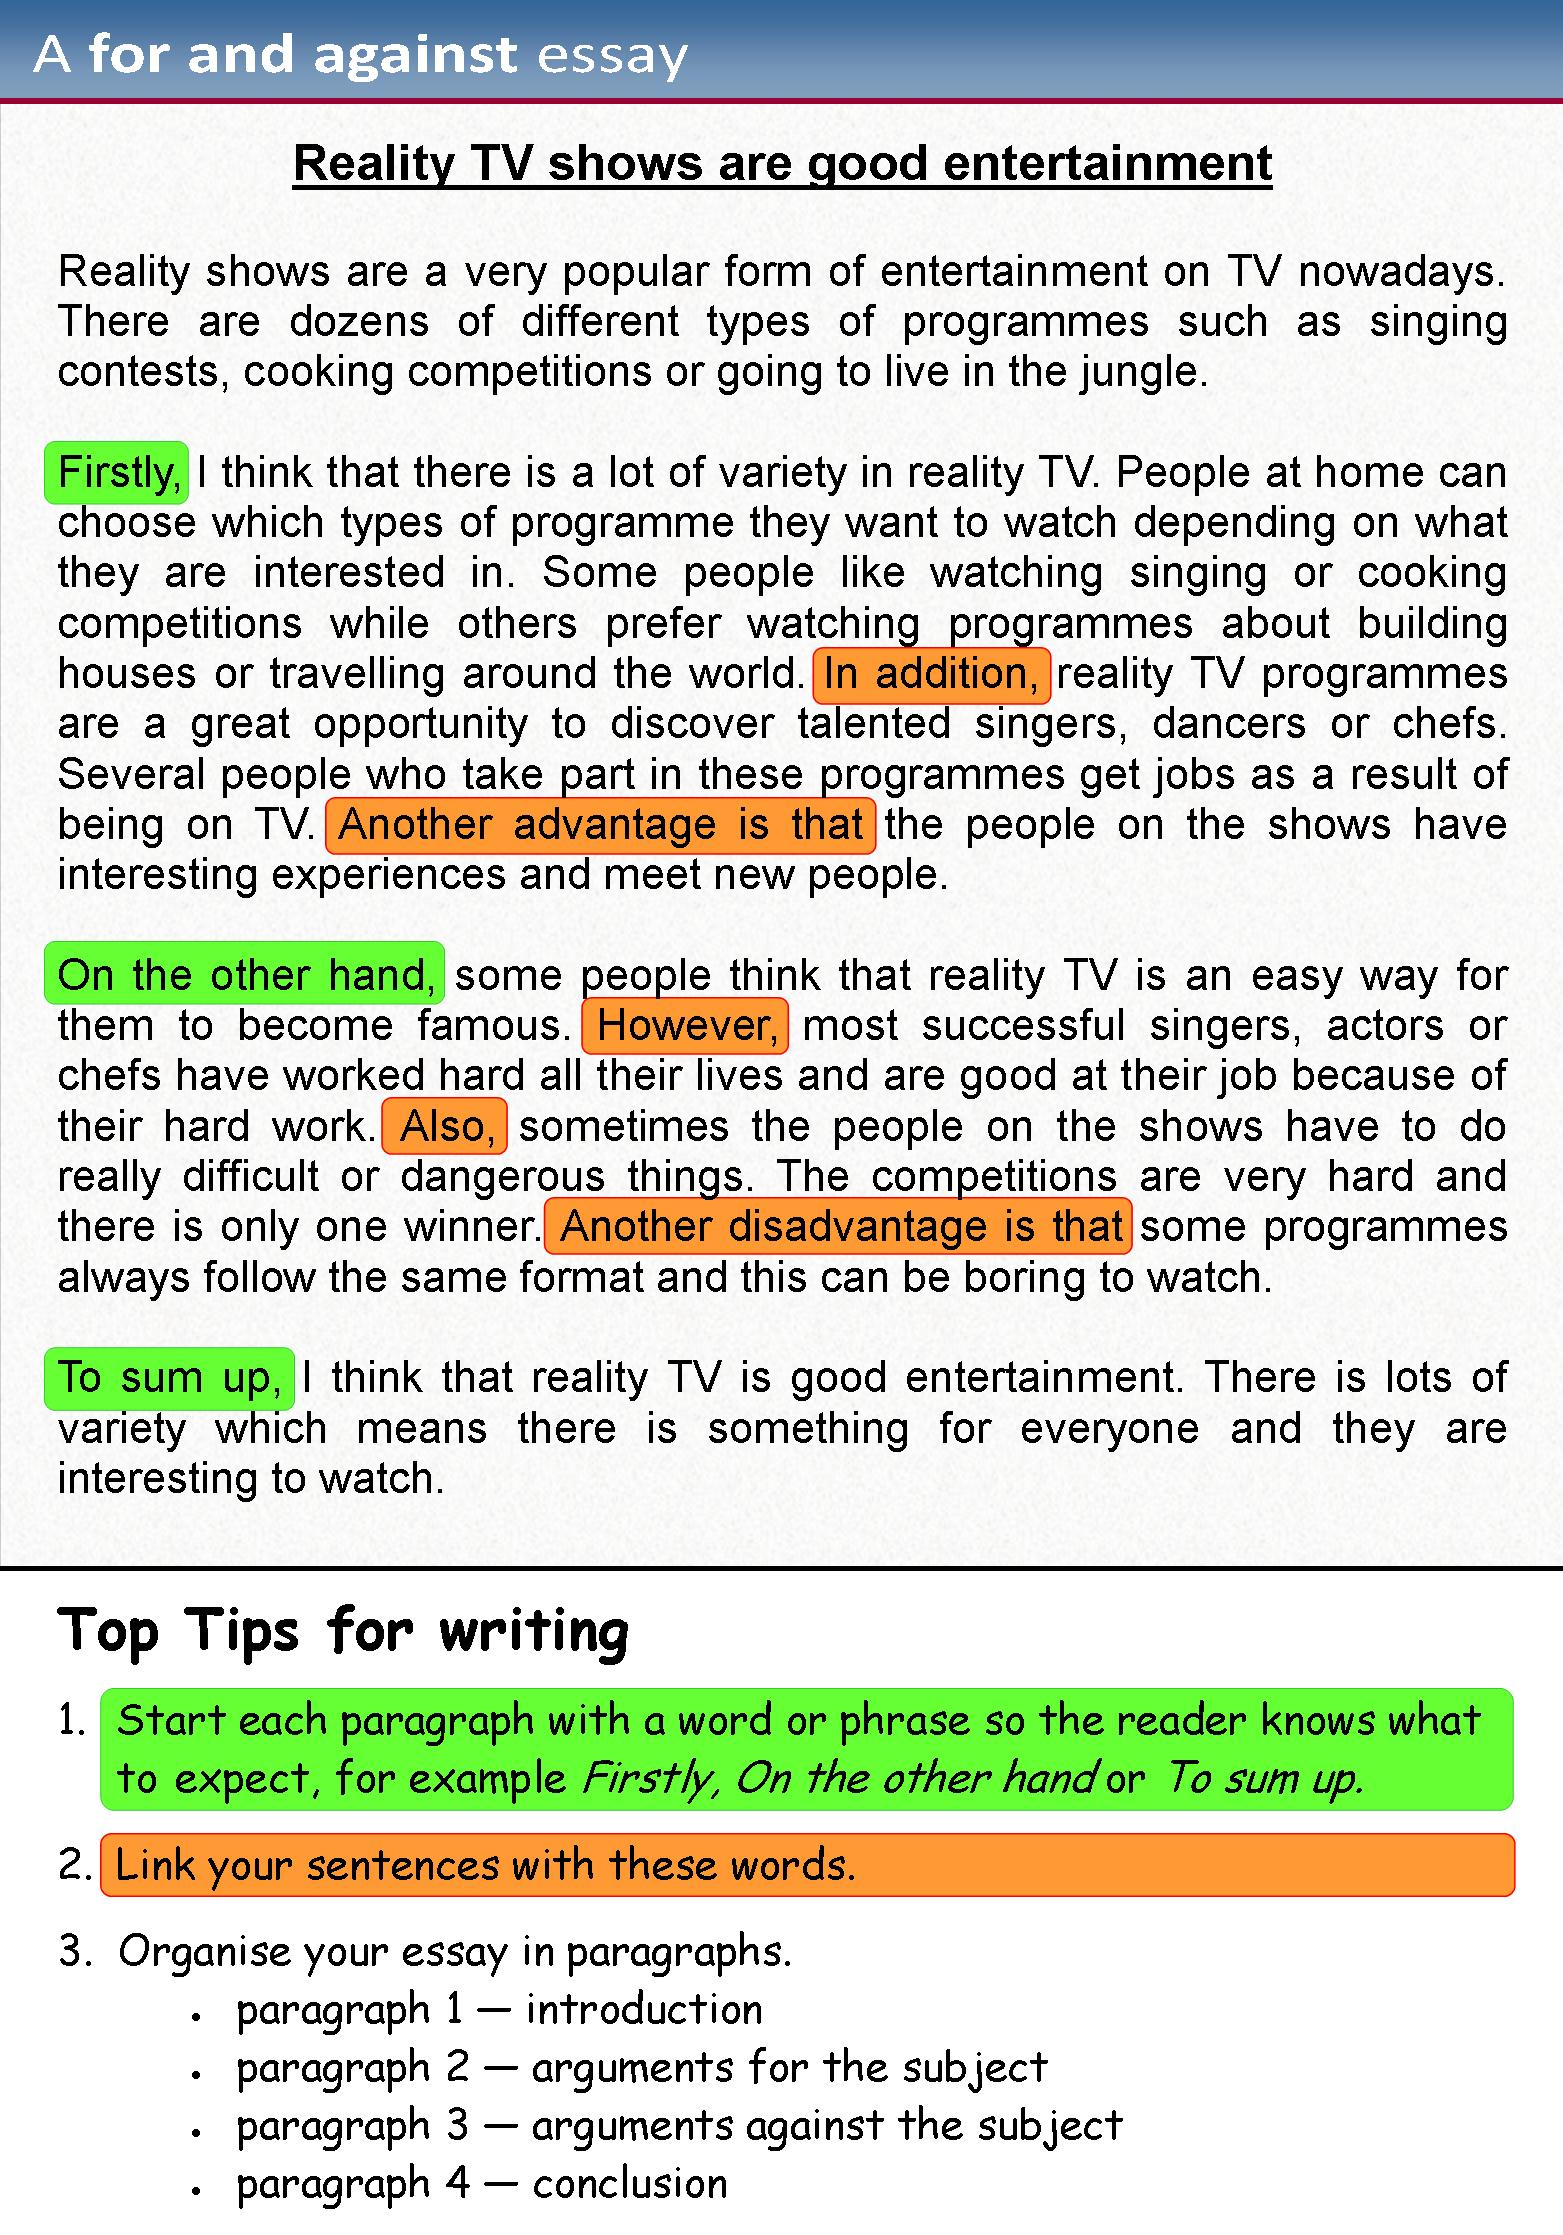 016 For Against Essay 1 Funny Essays Stupendous Topics High School Students About Full